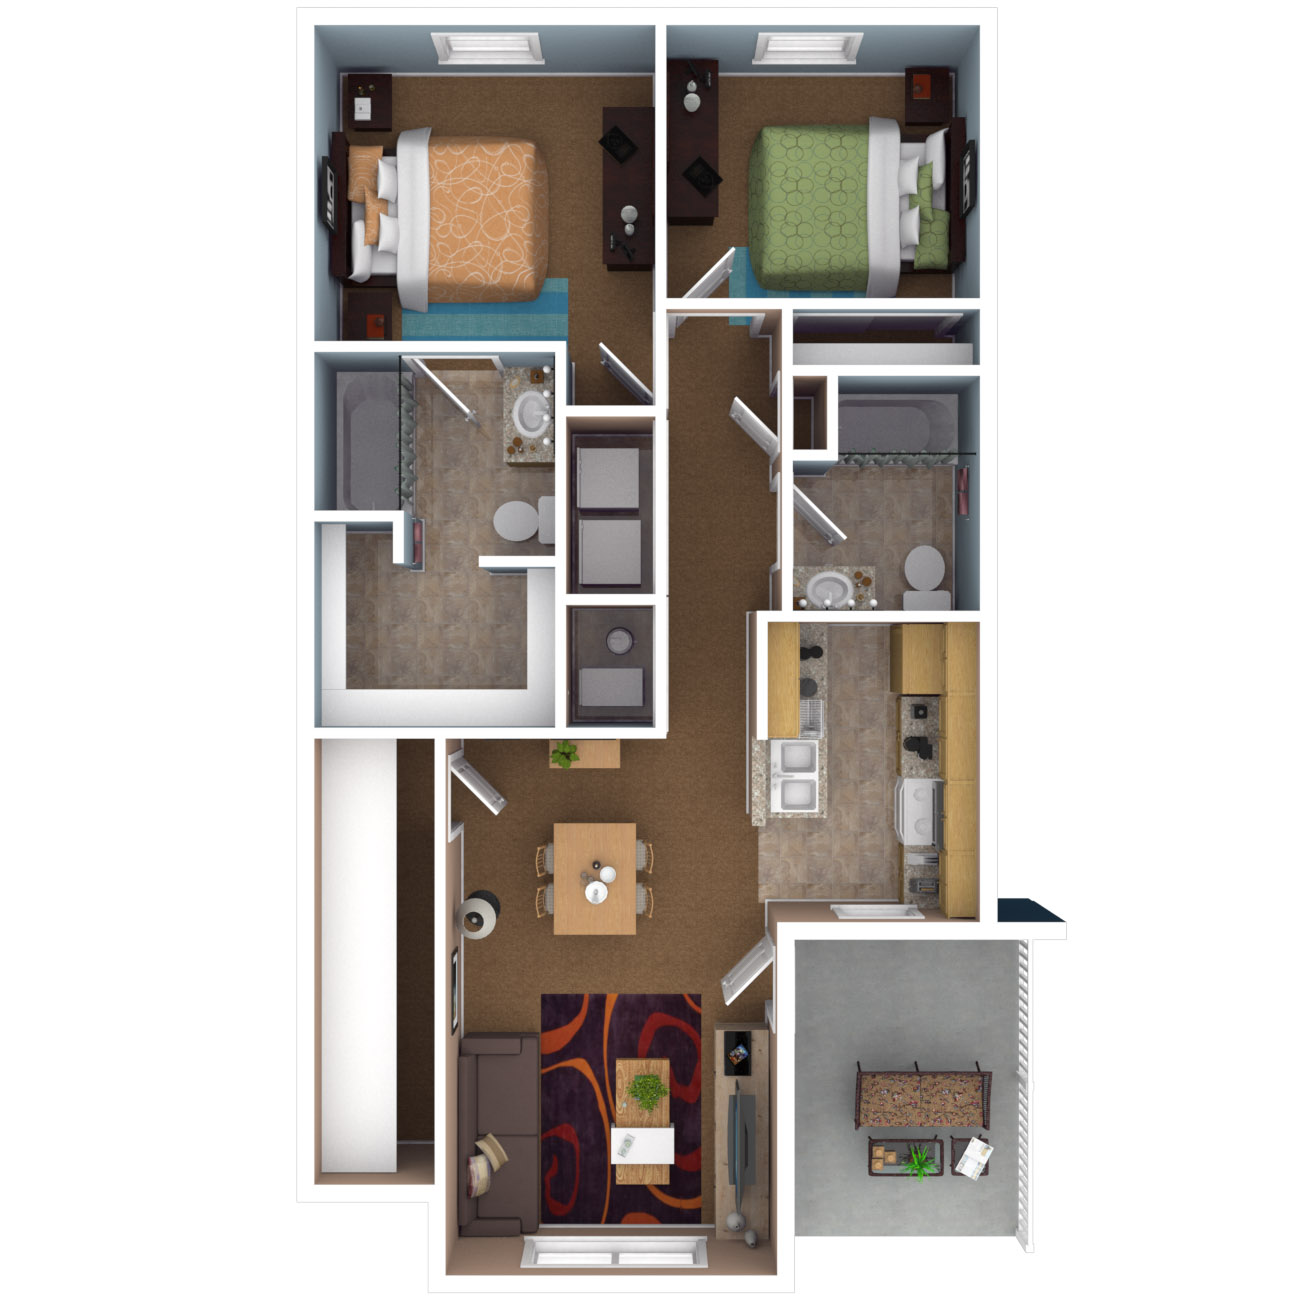 Apartments in indianapolis floor plans for 2 bedroom apartment decor